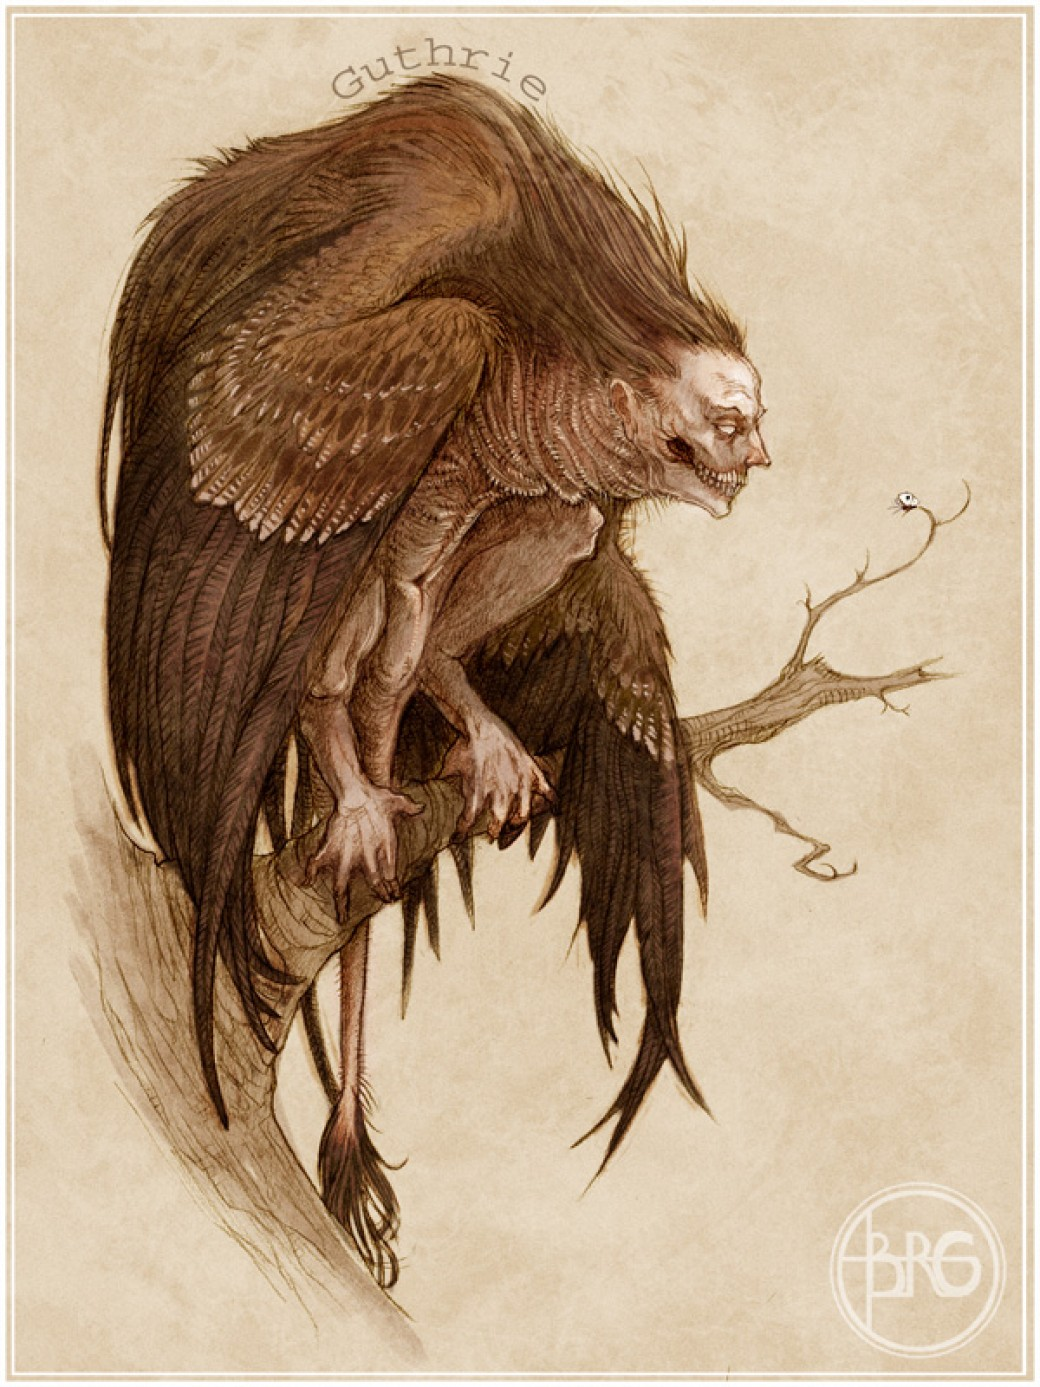 The Harpy por GuthrieArtwork